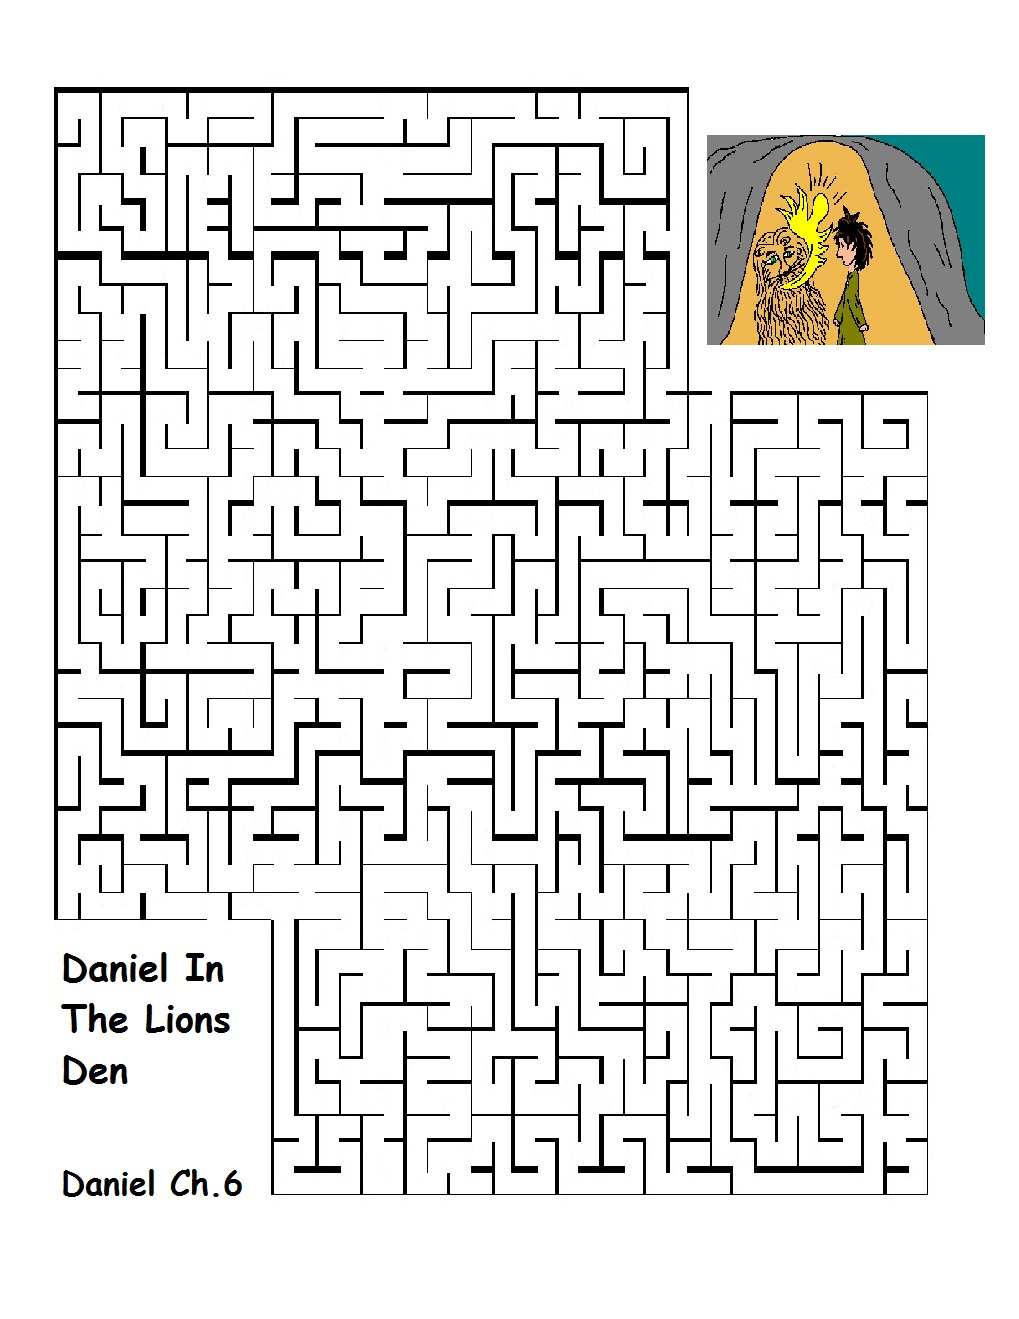 Daniel In The Lions Den Maze Printable Version